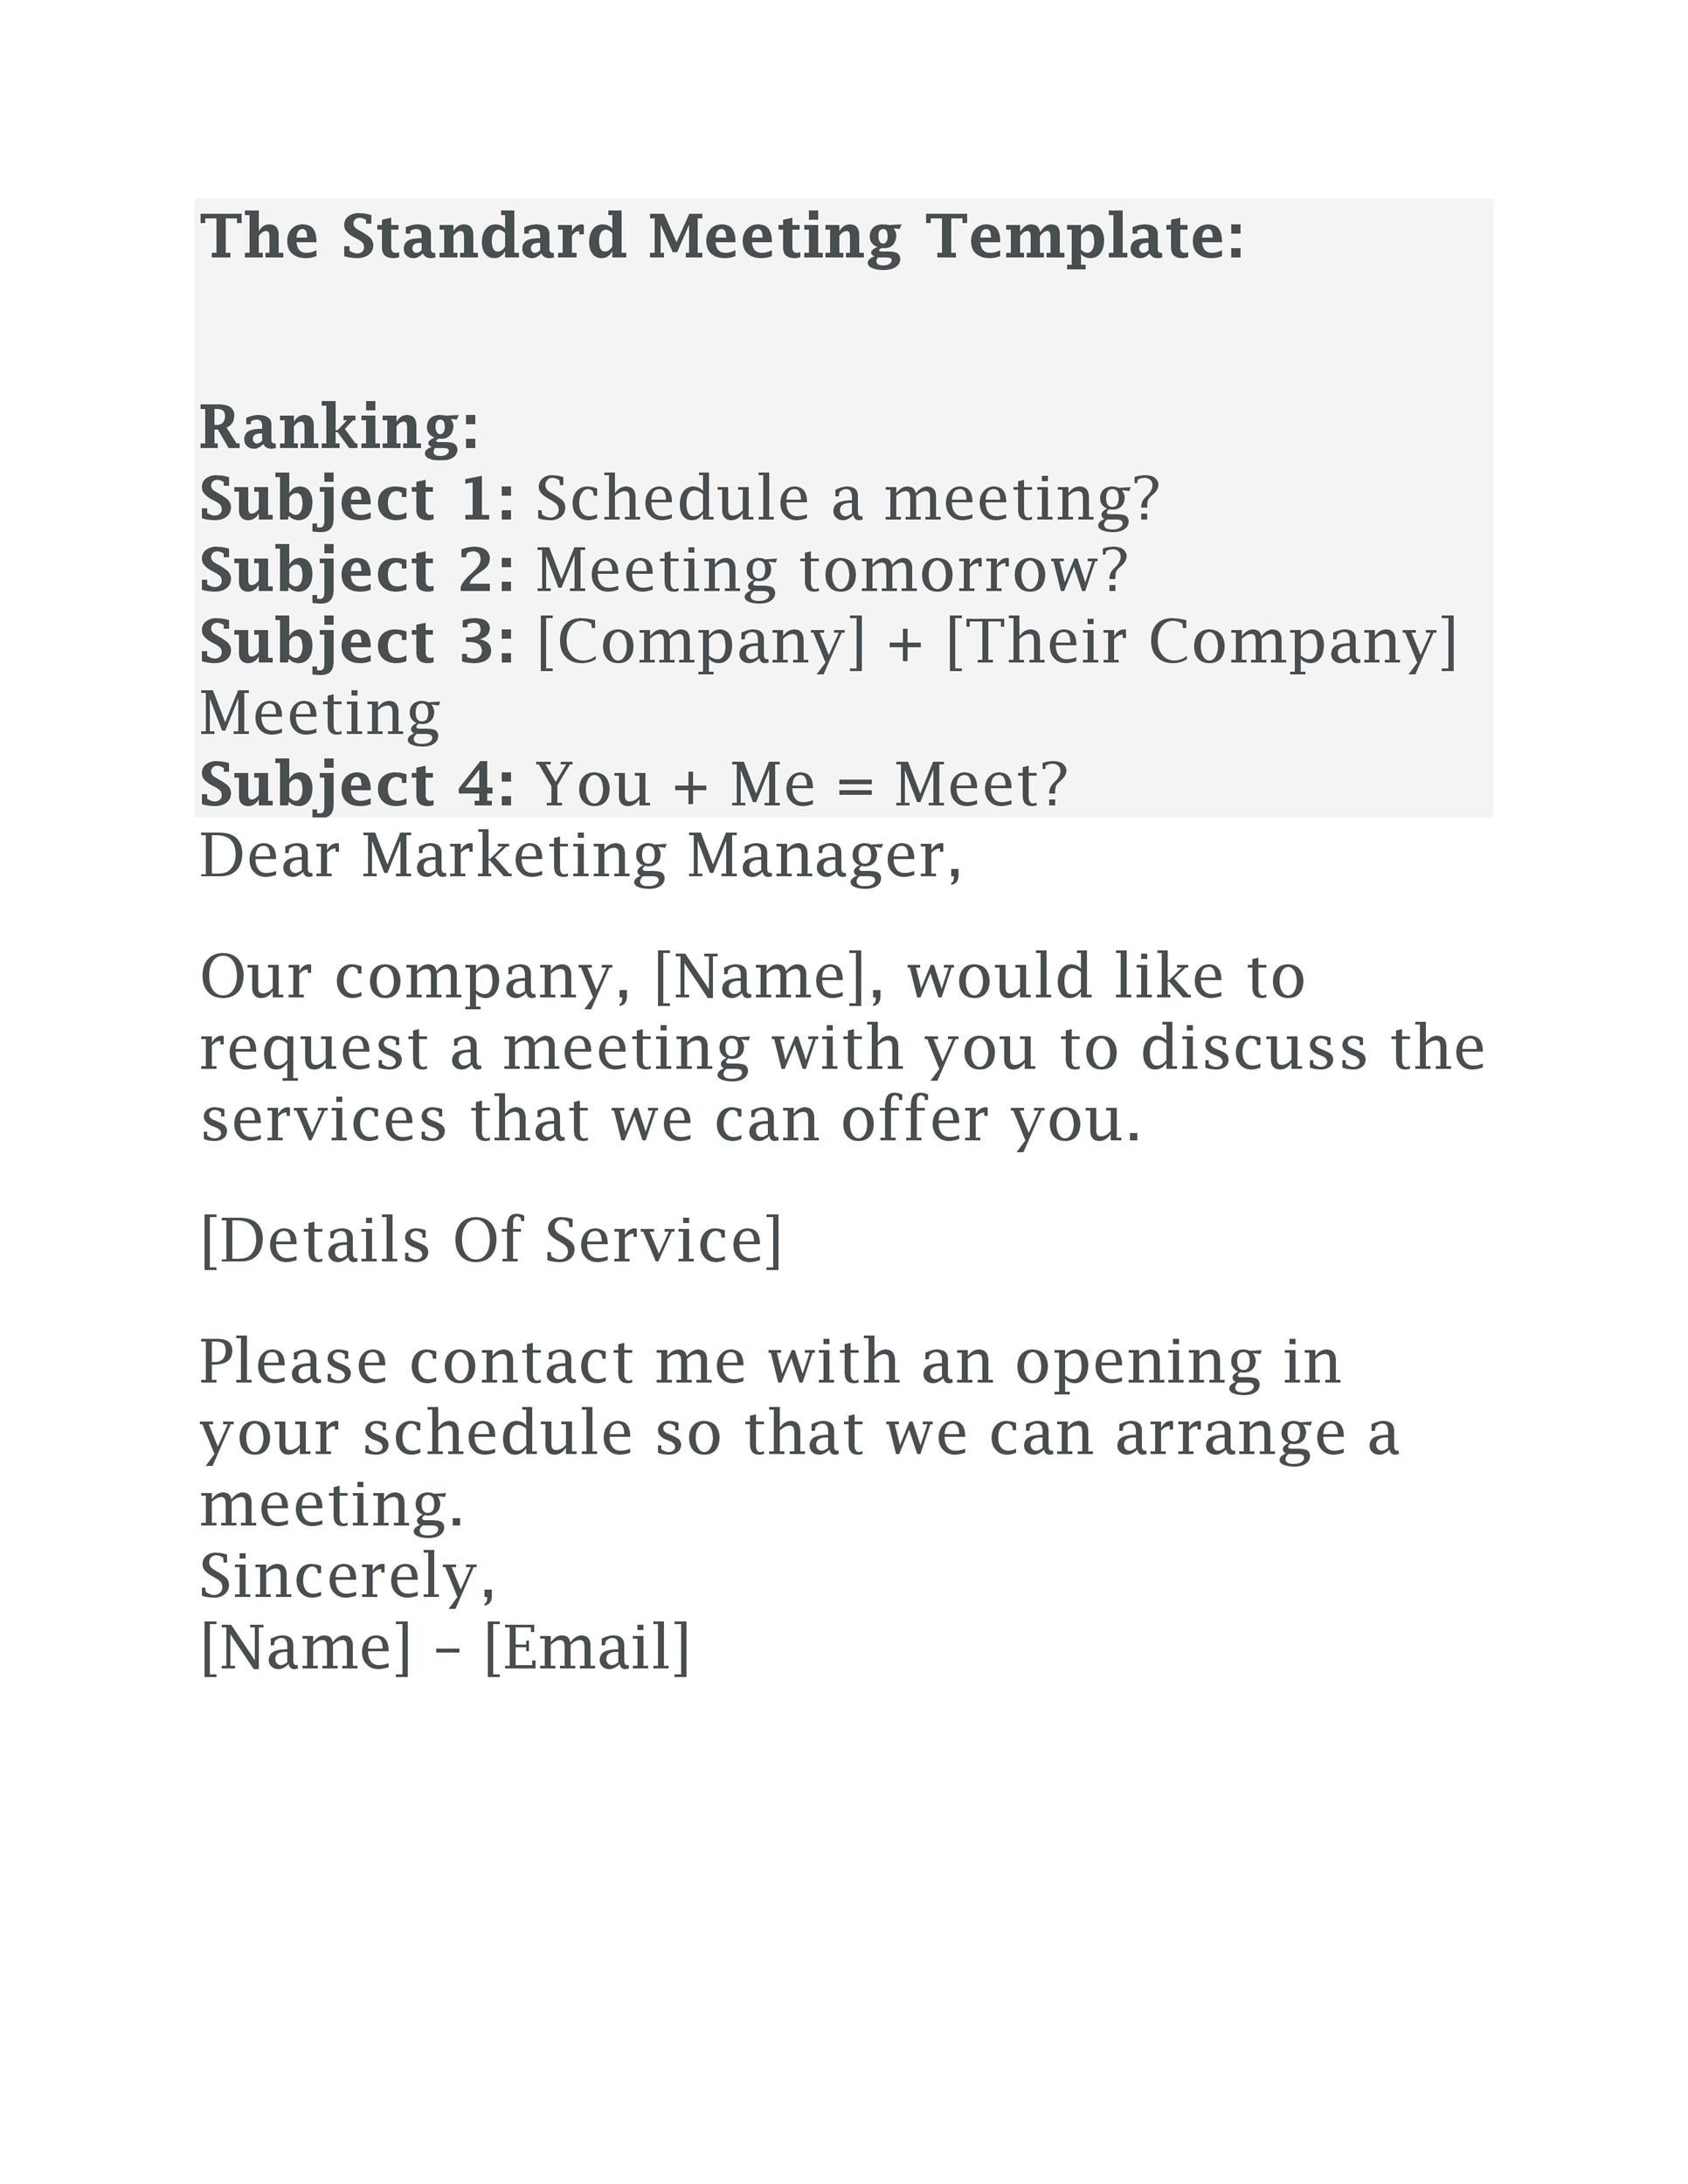 Free meeting request email 33